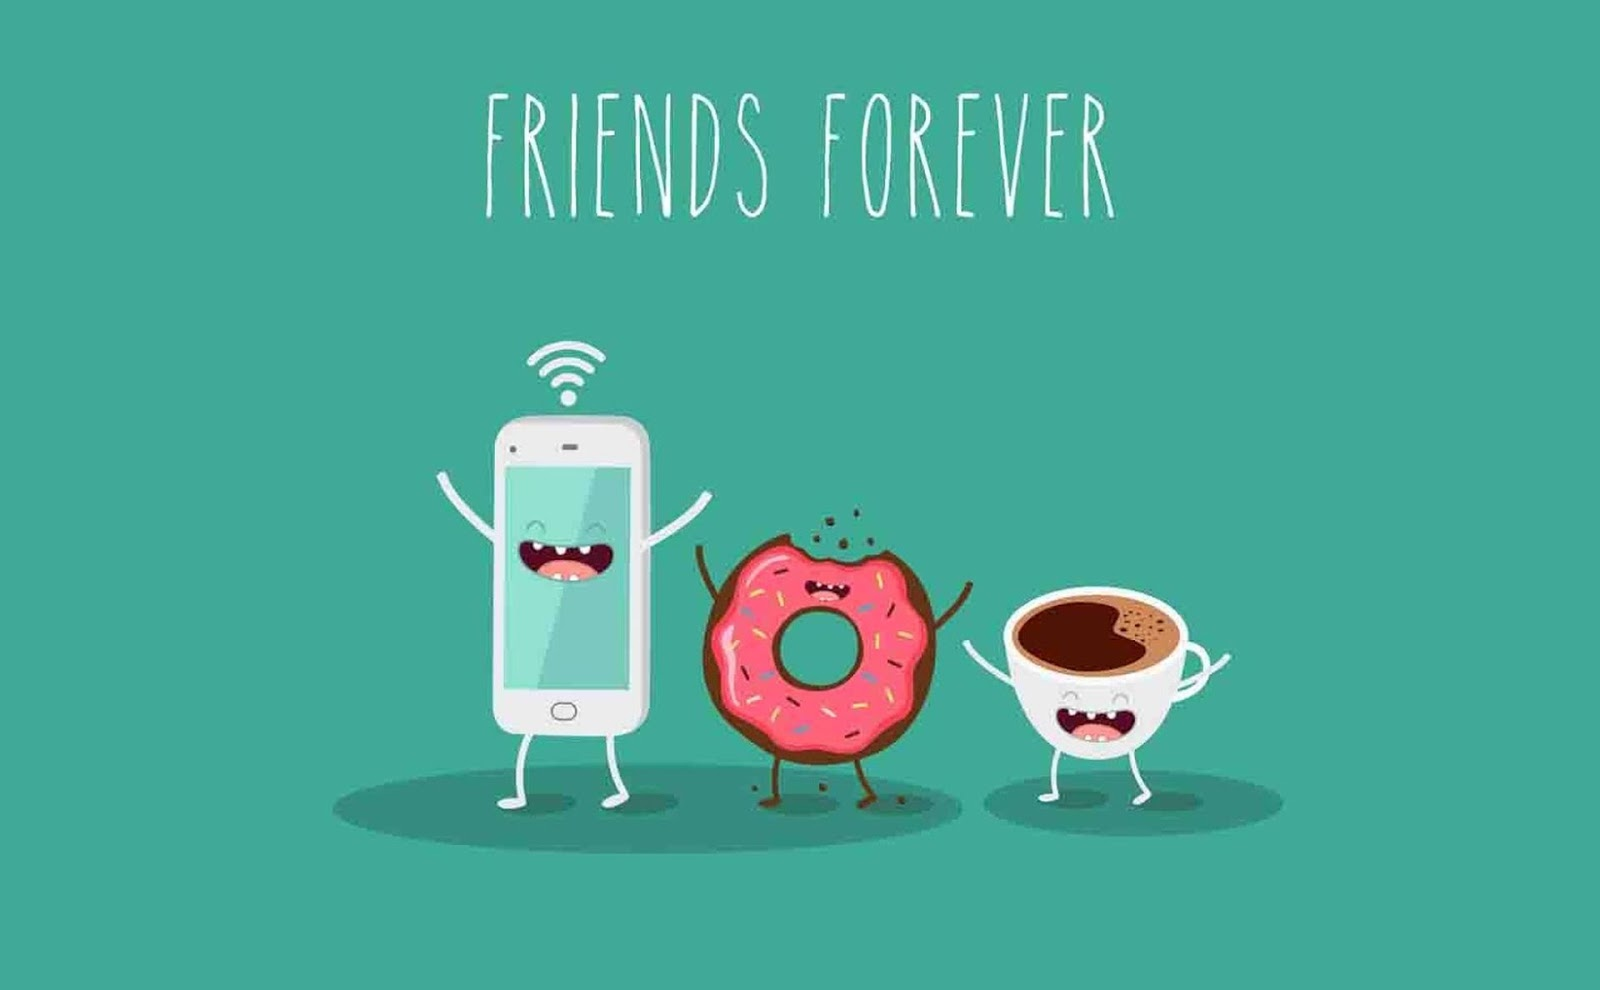 WALLPAPER FRIENDS FOREVER FUNNY Gambar Kartun Lucu Dan Wallpaper